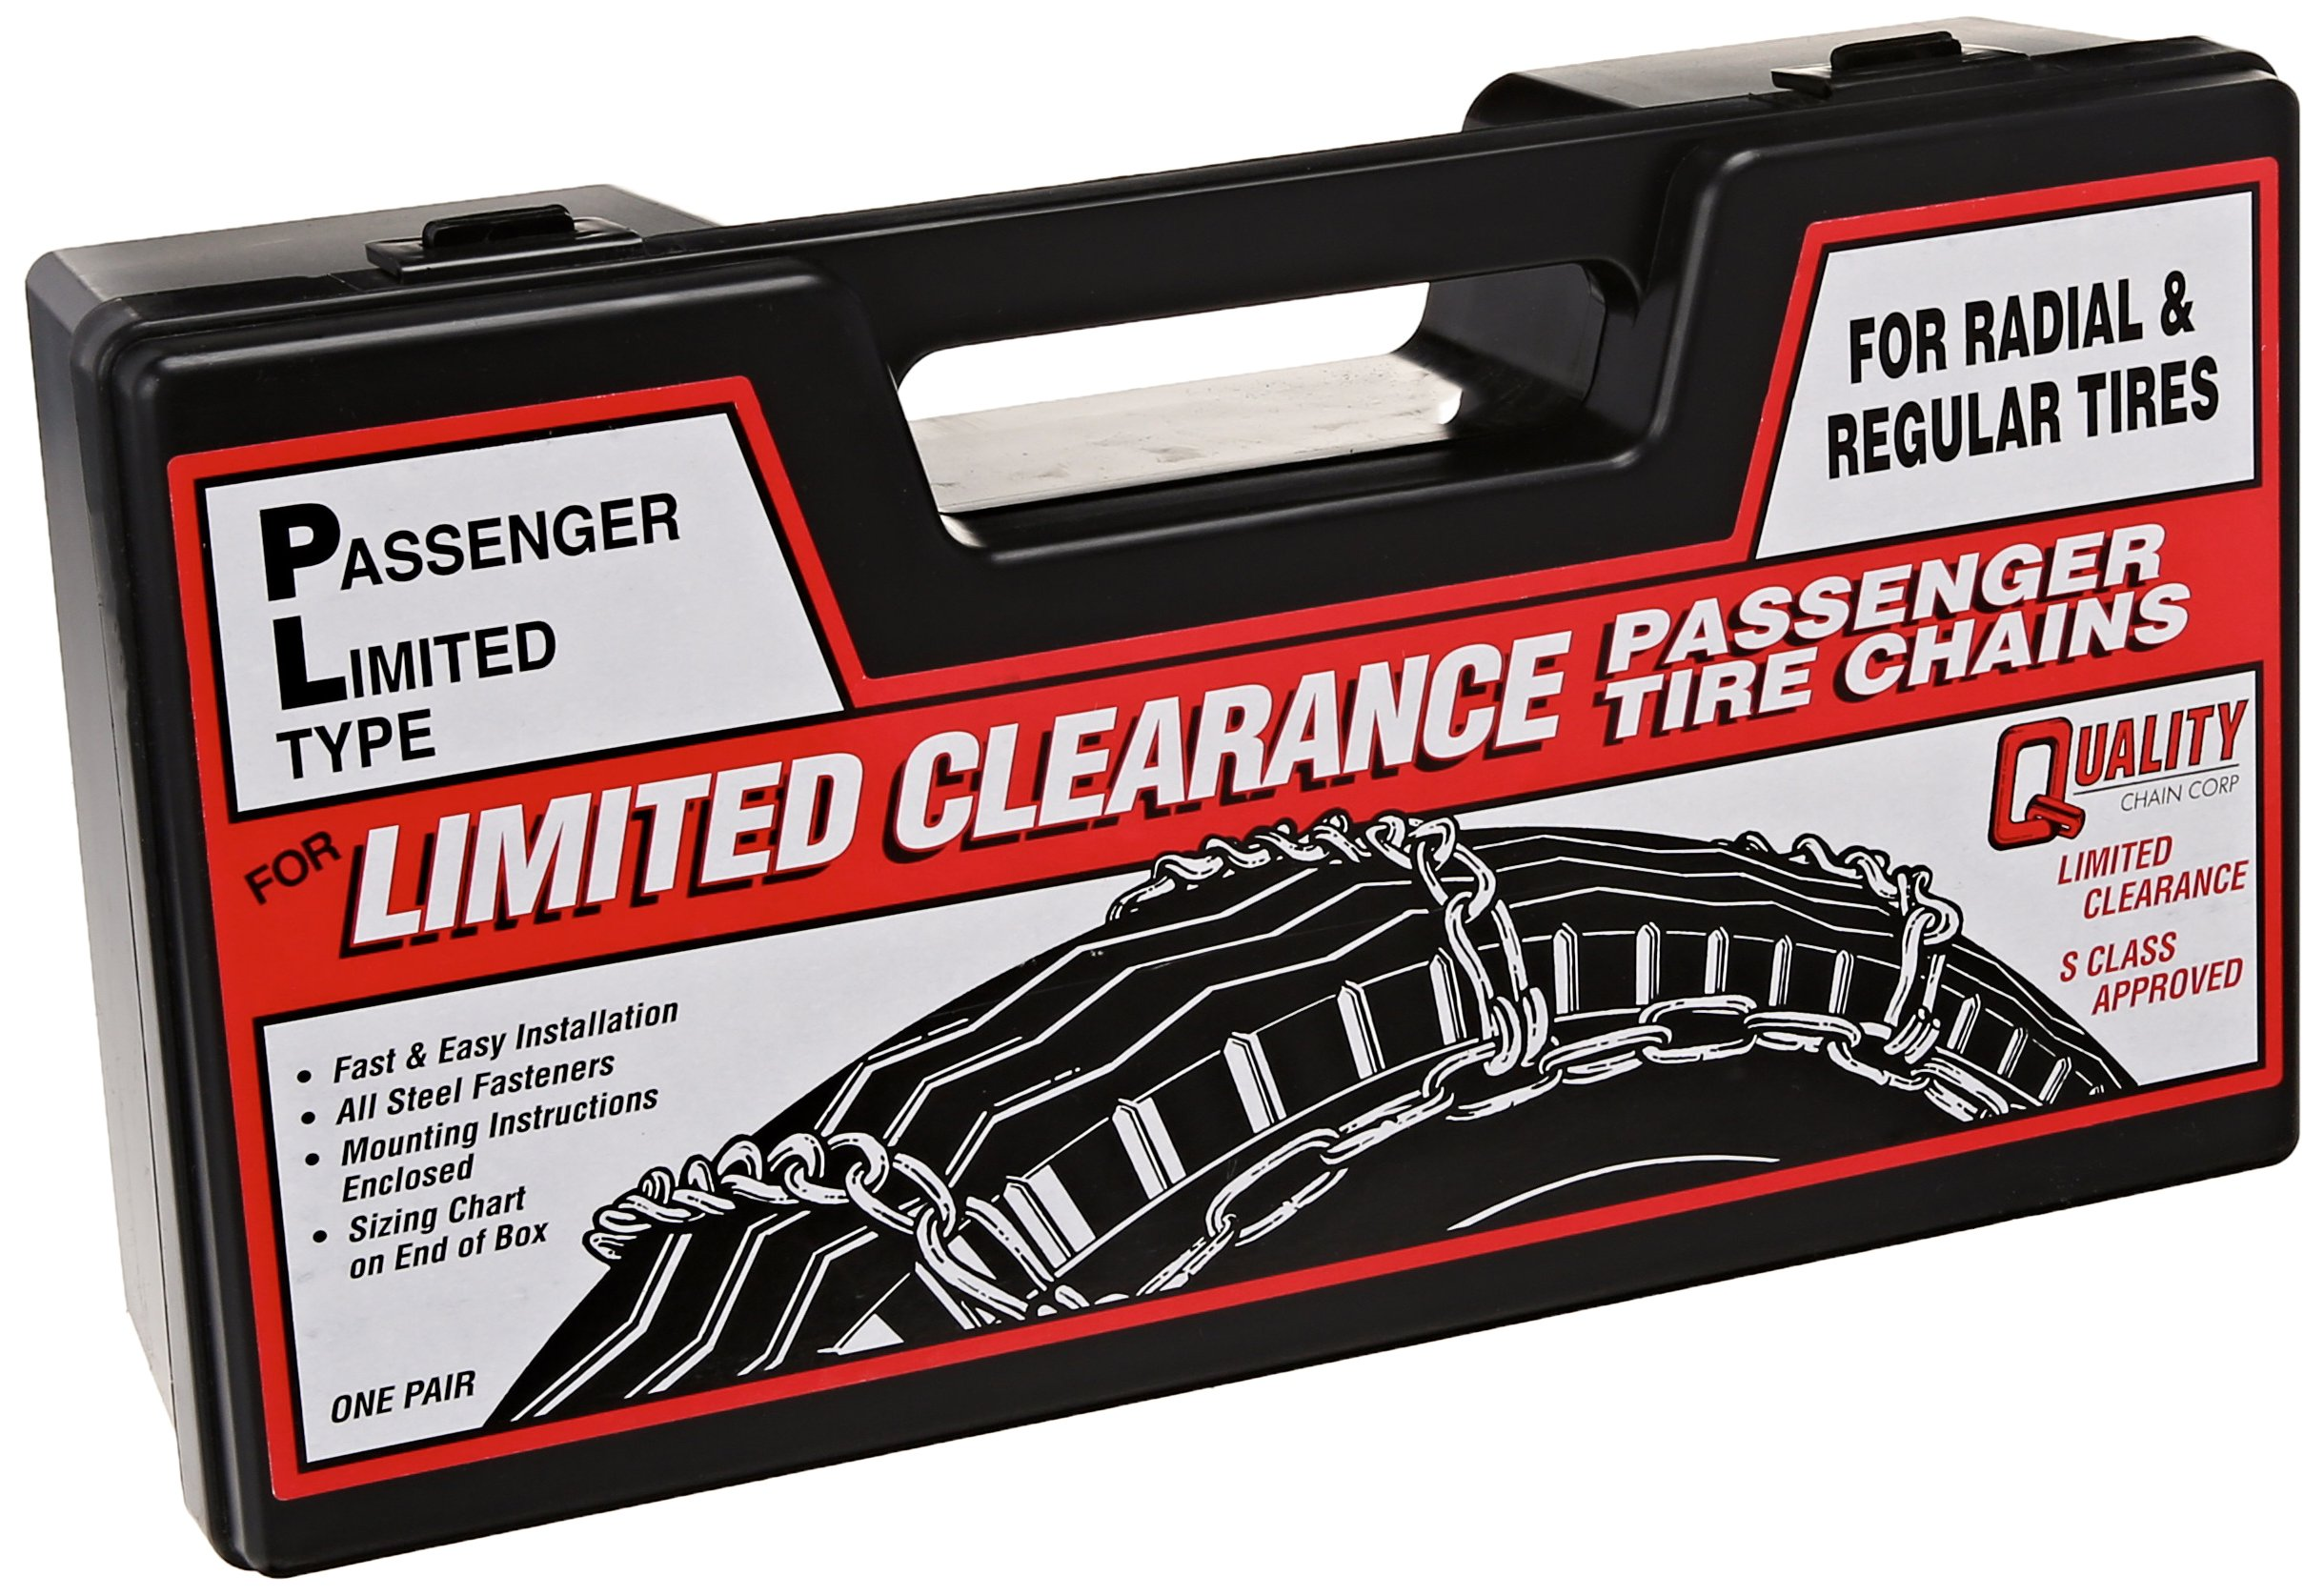 Quality Chain 1130 Passenger Tire Link Chain